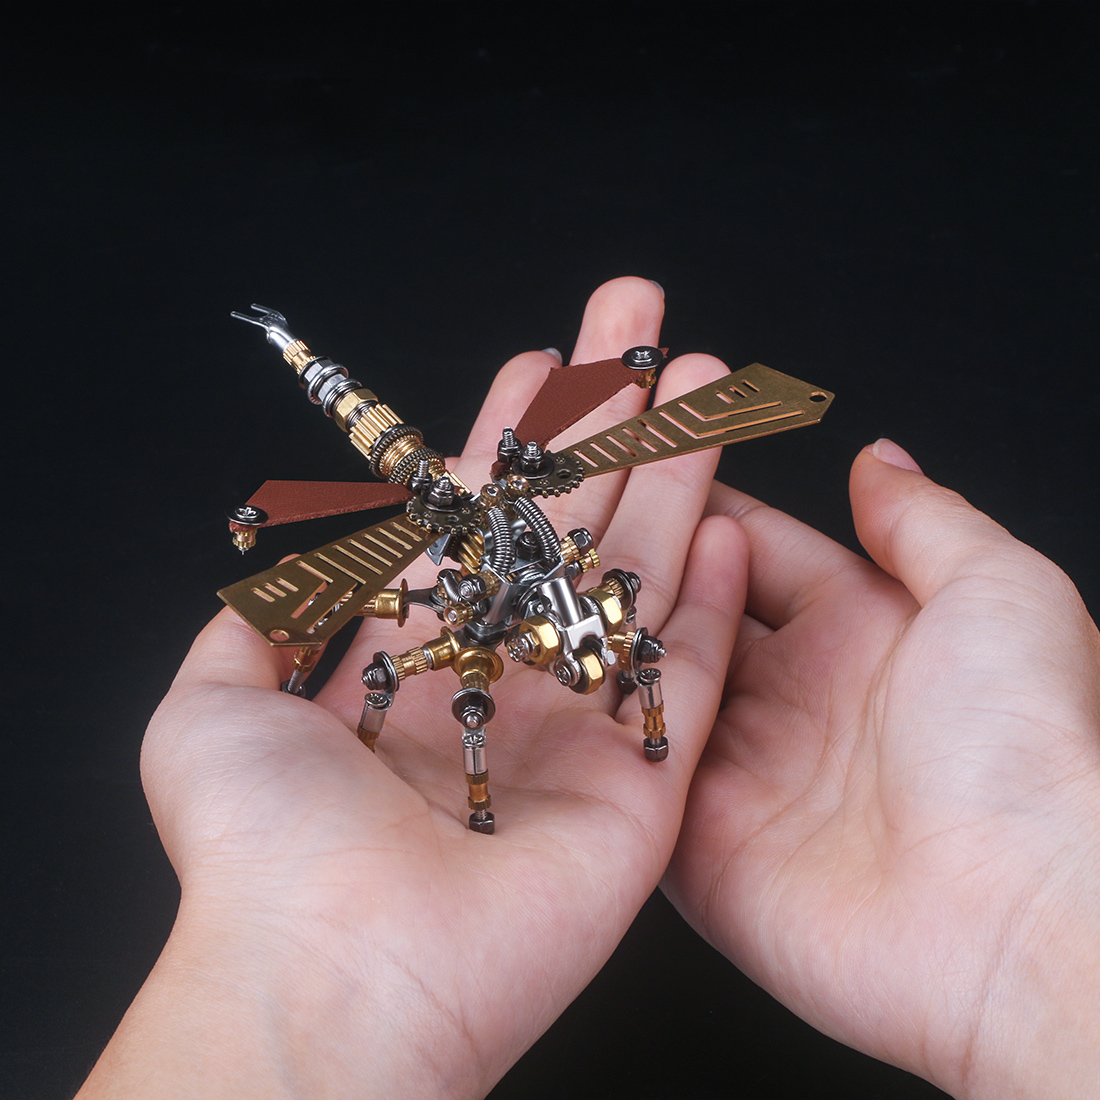 243Pcs Mechanical Dragonfly 3D Puzzle DIY Metal Insect Model Kit